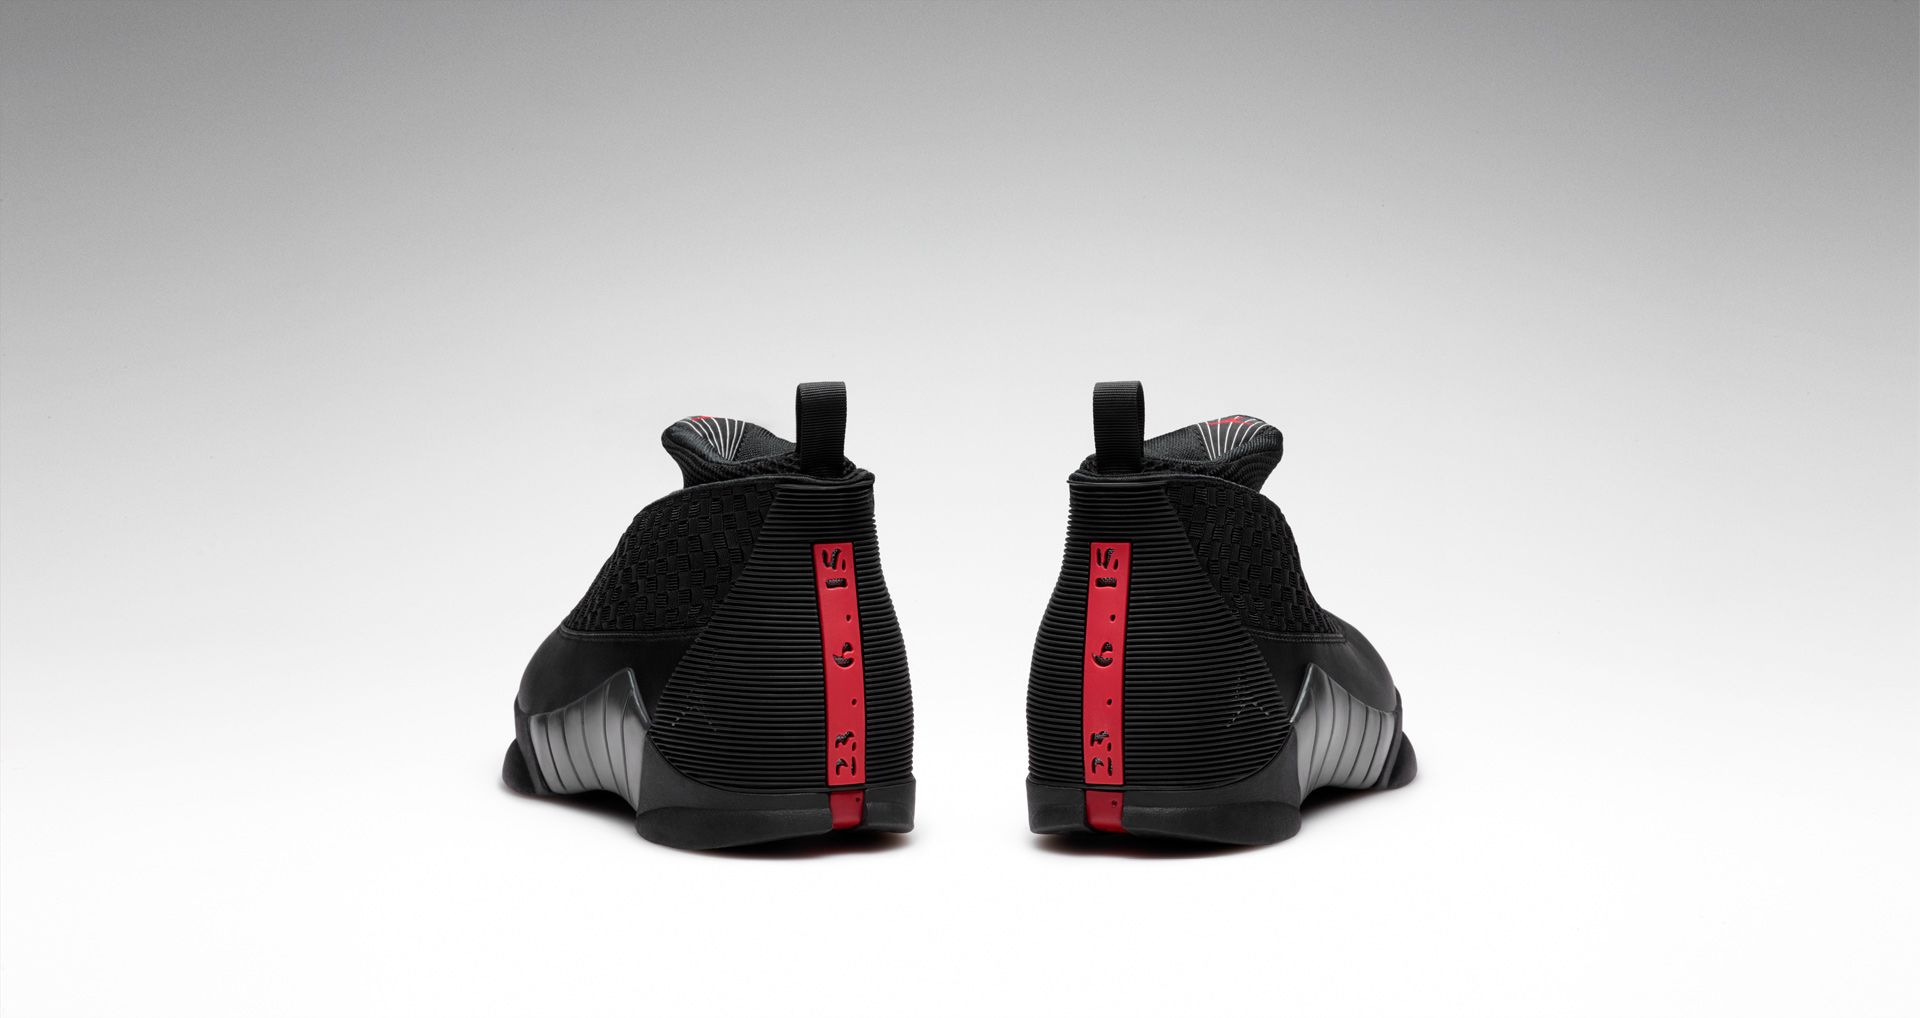 brand new d3874 685c3 Air Jordan 15 Retro OG  Black   Varsity Red . Nike⁠+ SNKRS